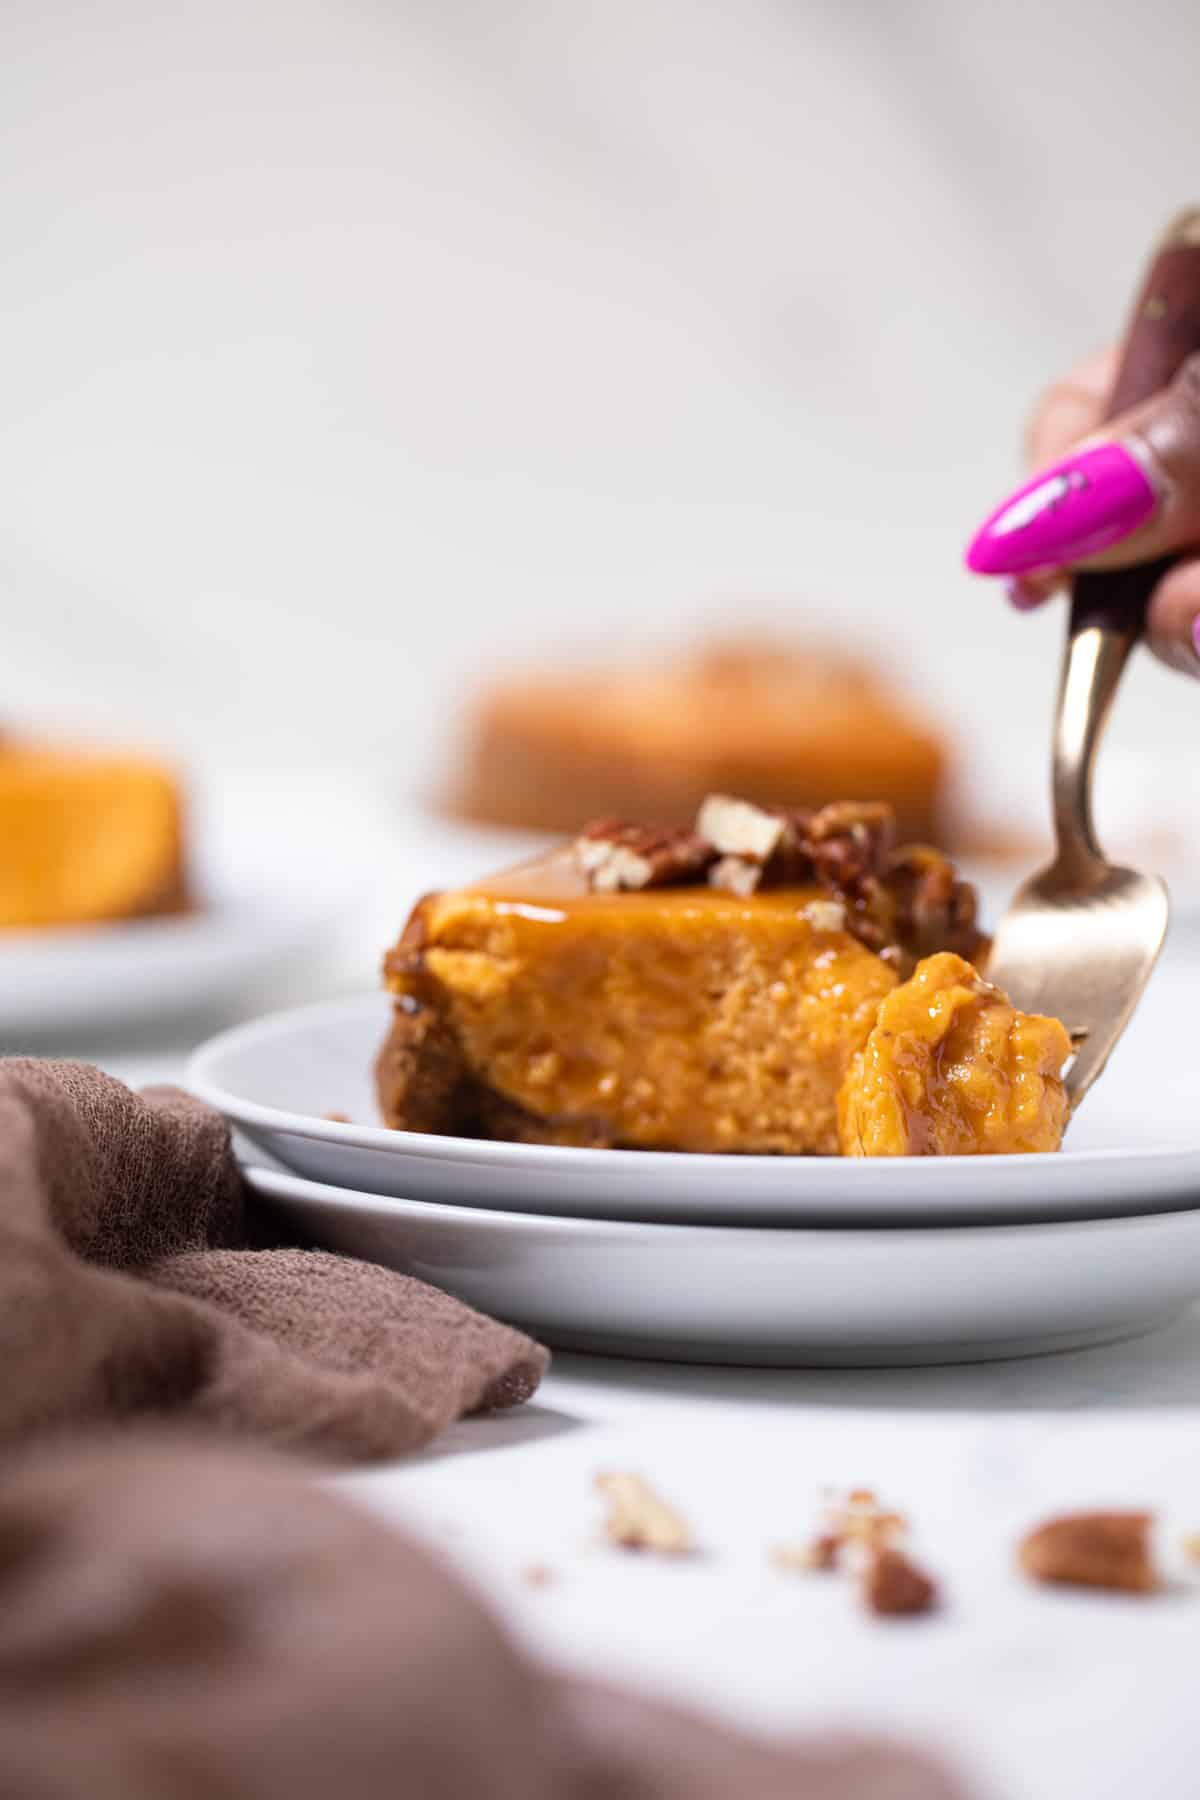 slice of sweet potato cheesecake with a hand taking a bite on a white plate